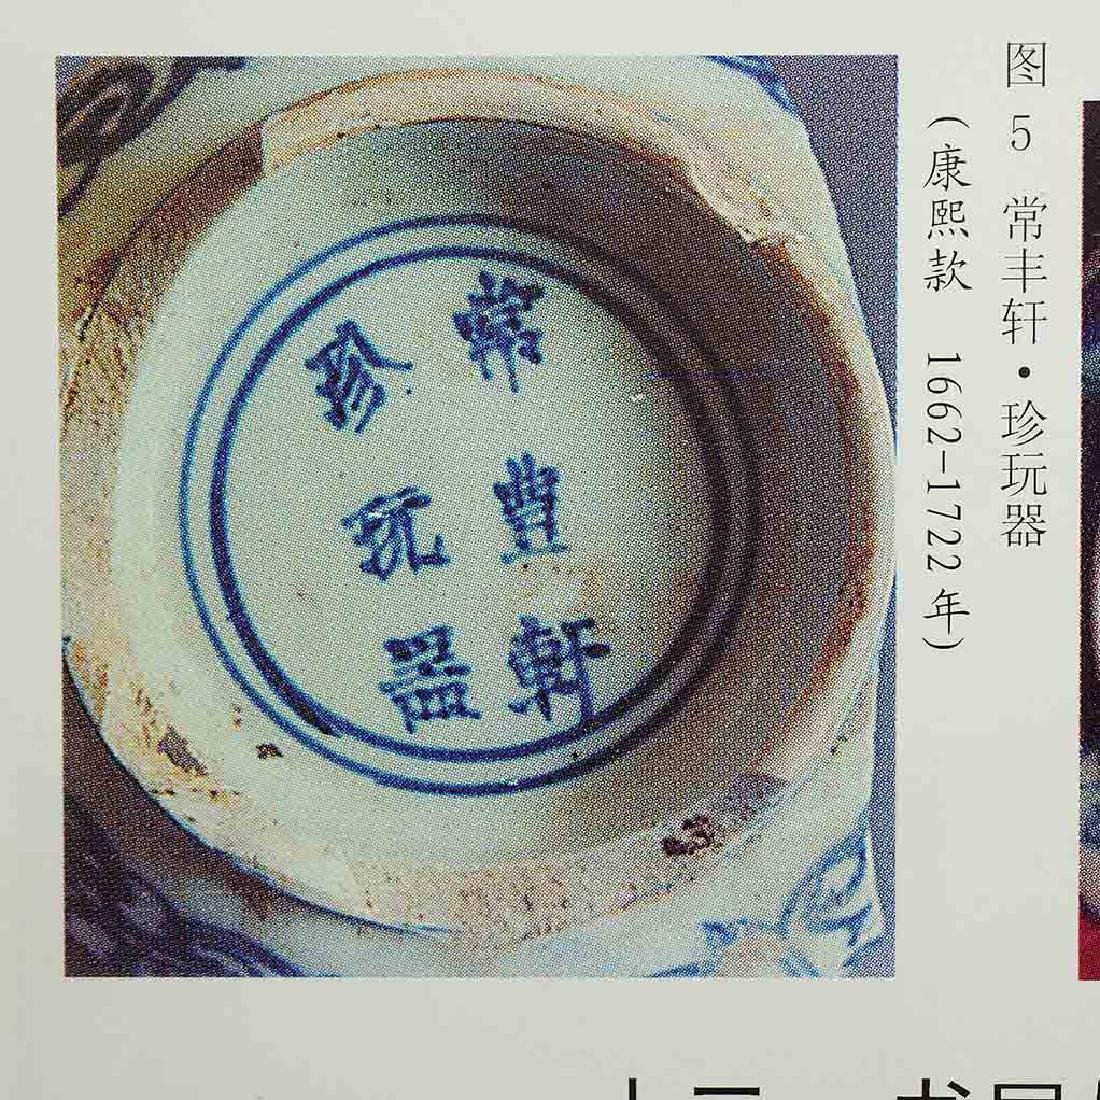 Flared-Rim Censer, Kangxi Mark, Qing Dynasty - 8